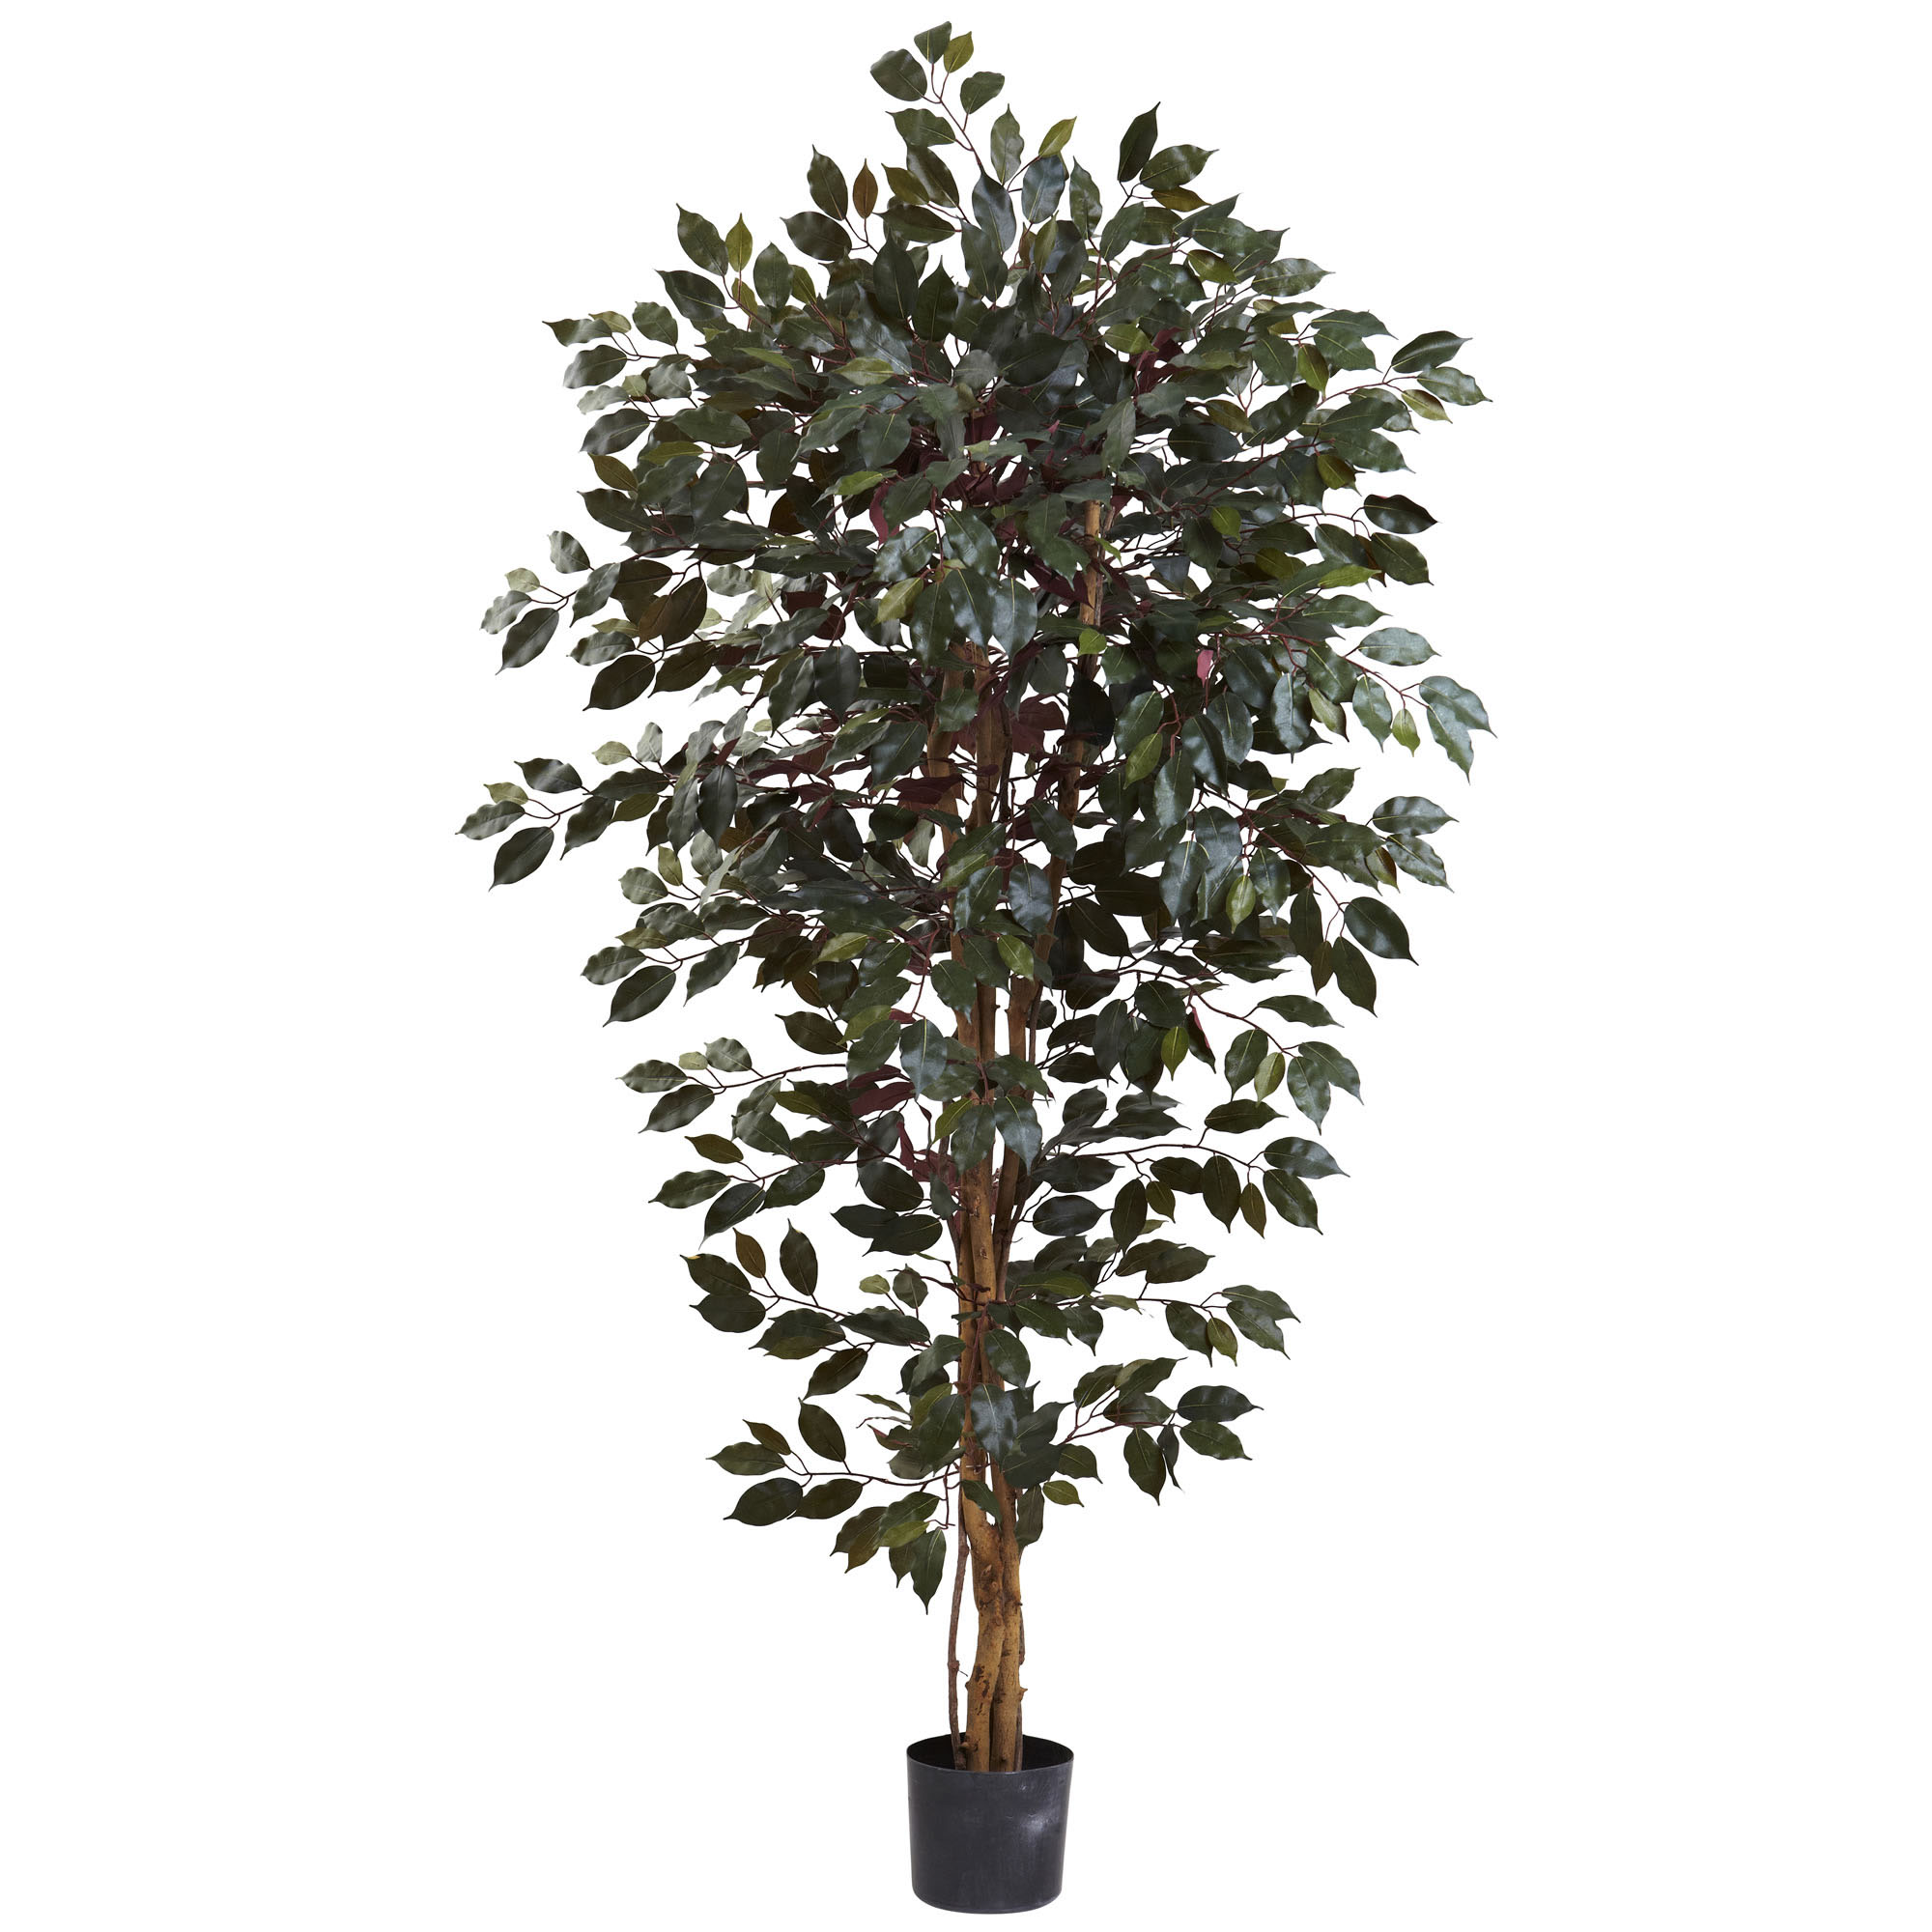 6 foot Indoor Silk Capensia Ficus Tree with 3 Trunks: Potted 5436